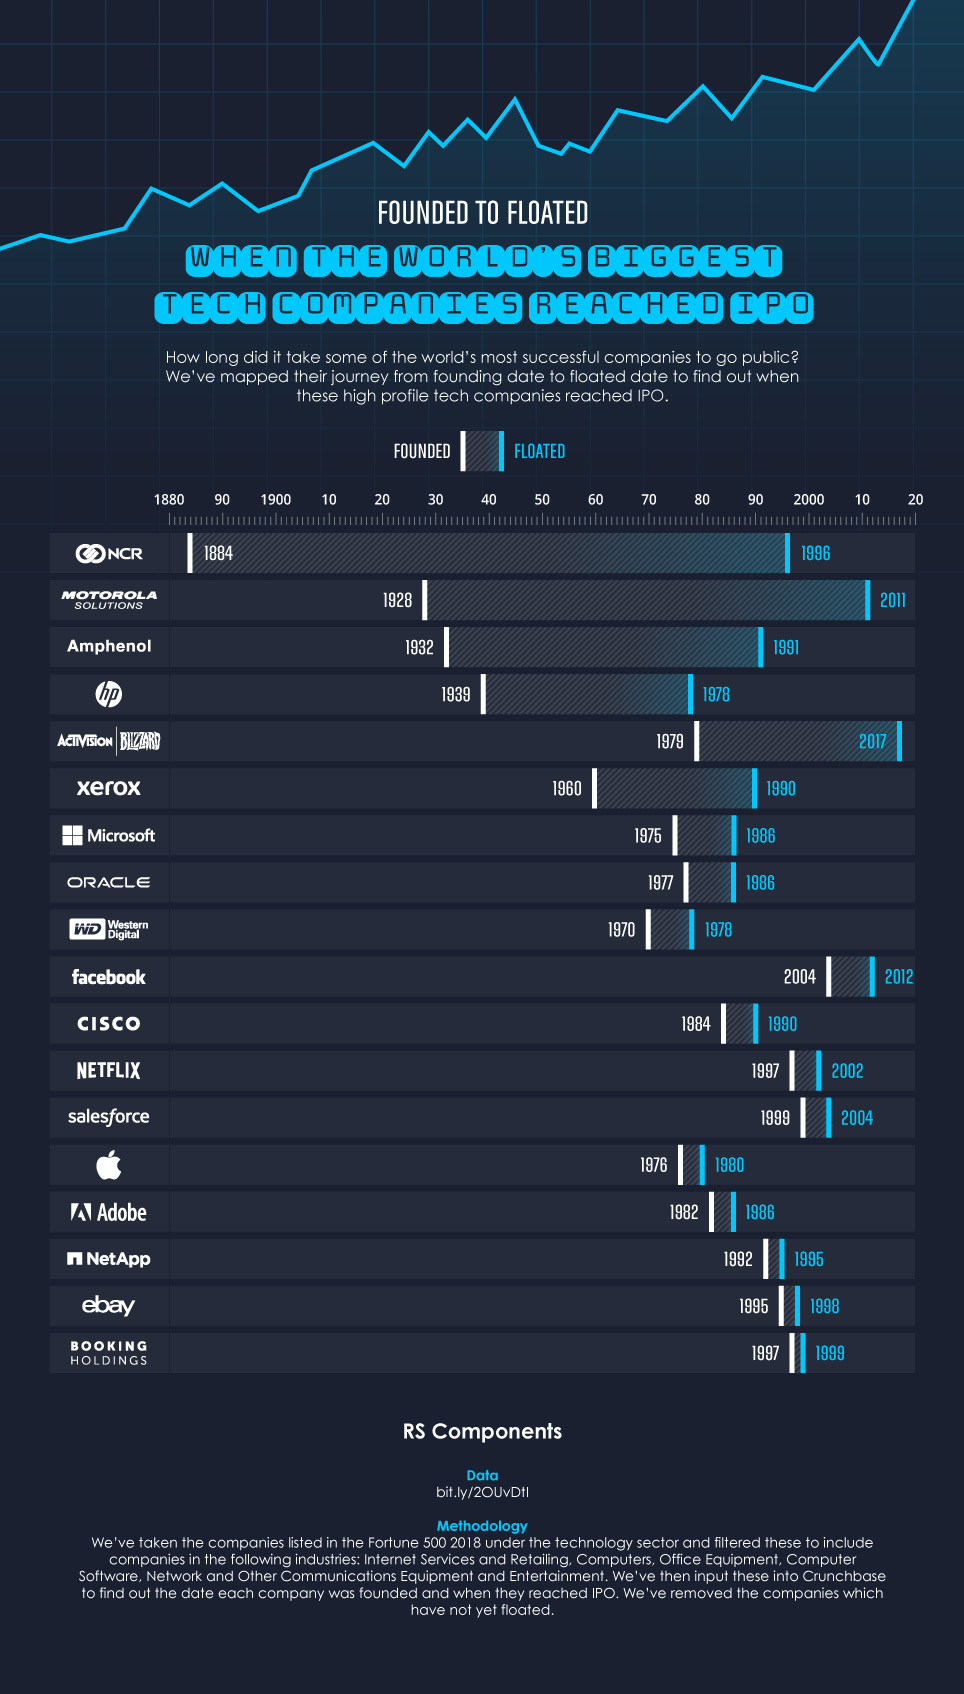 When The World's Biggest Tech Companies Reached IPO [Infographic]